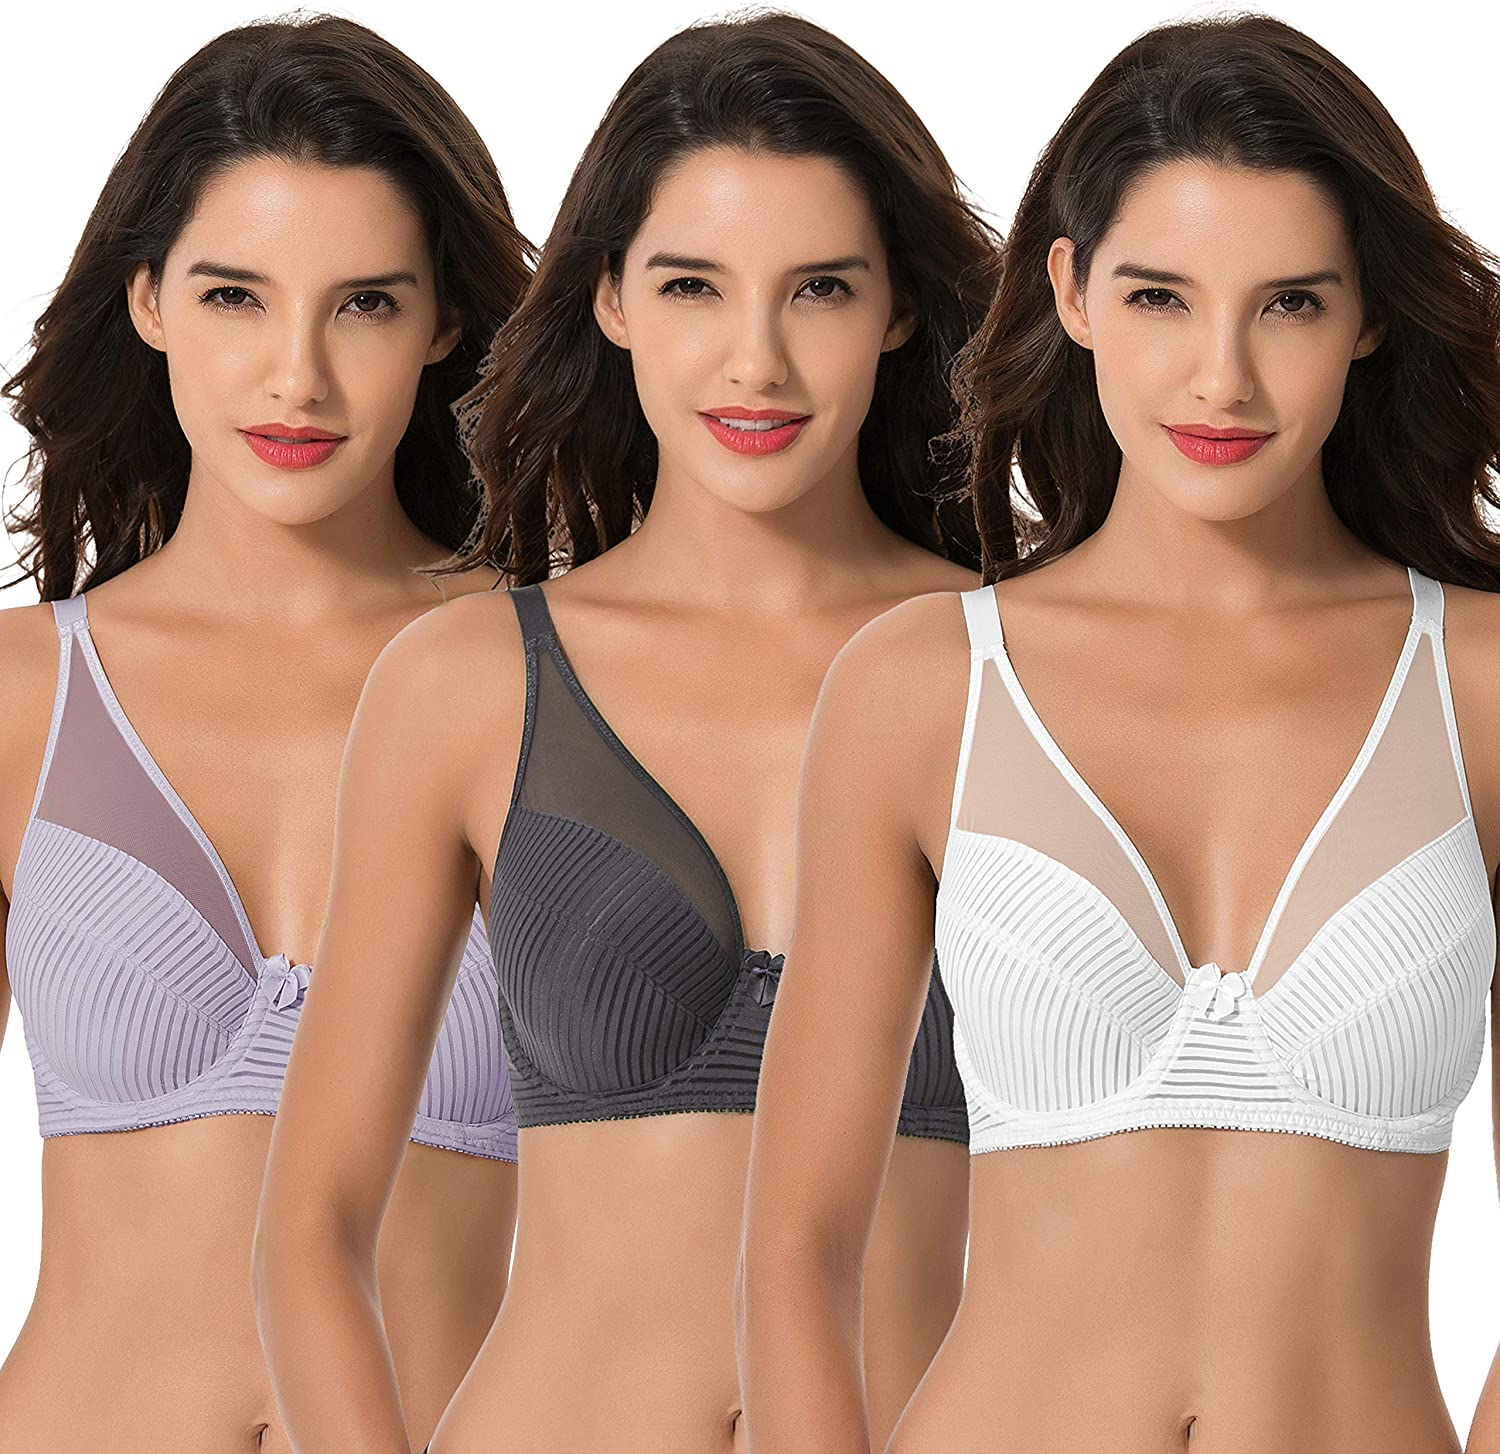 Curve Muse Women's Plus Size Louisville-Jefferson County Mall Underwire Full Unlined Minimizer Max 60% OFF Co